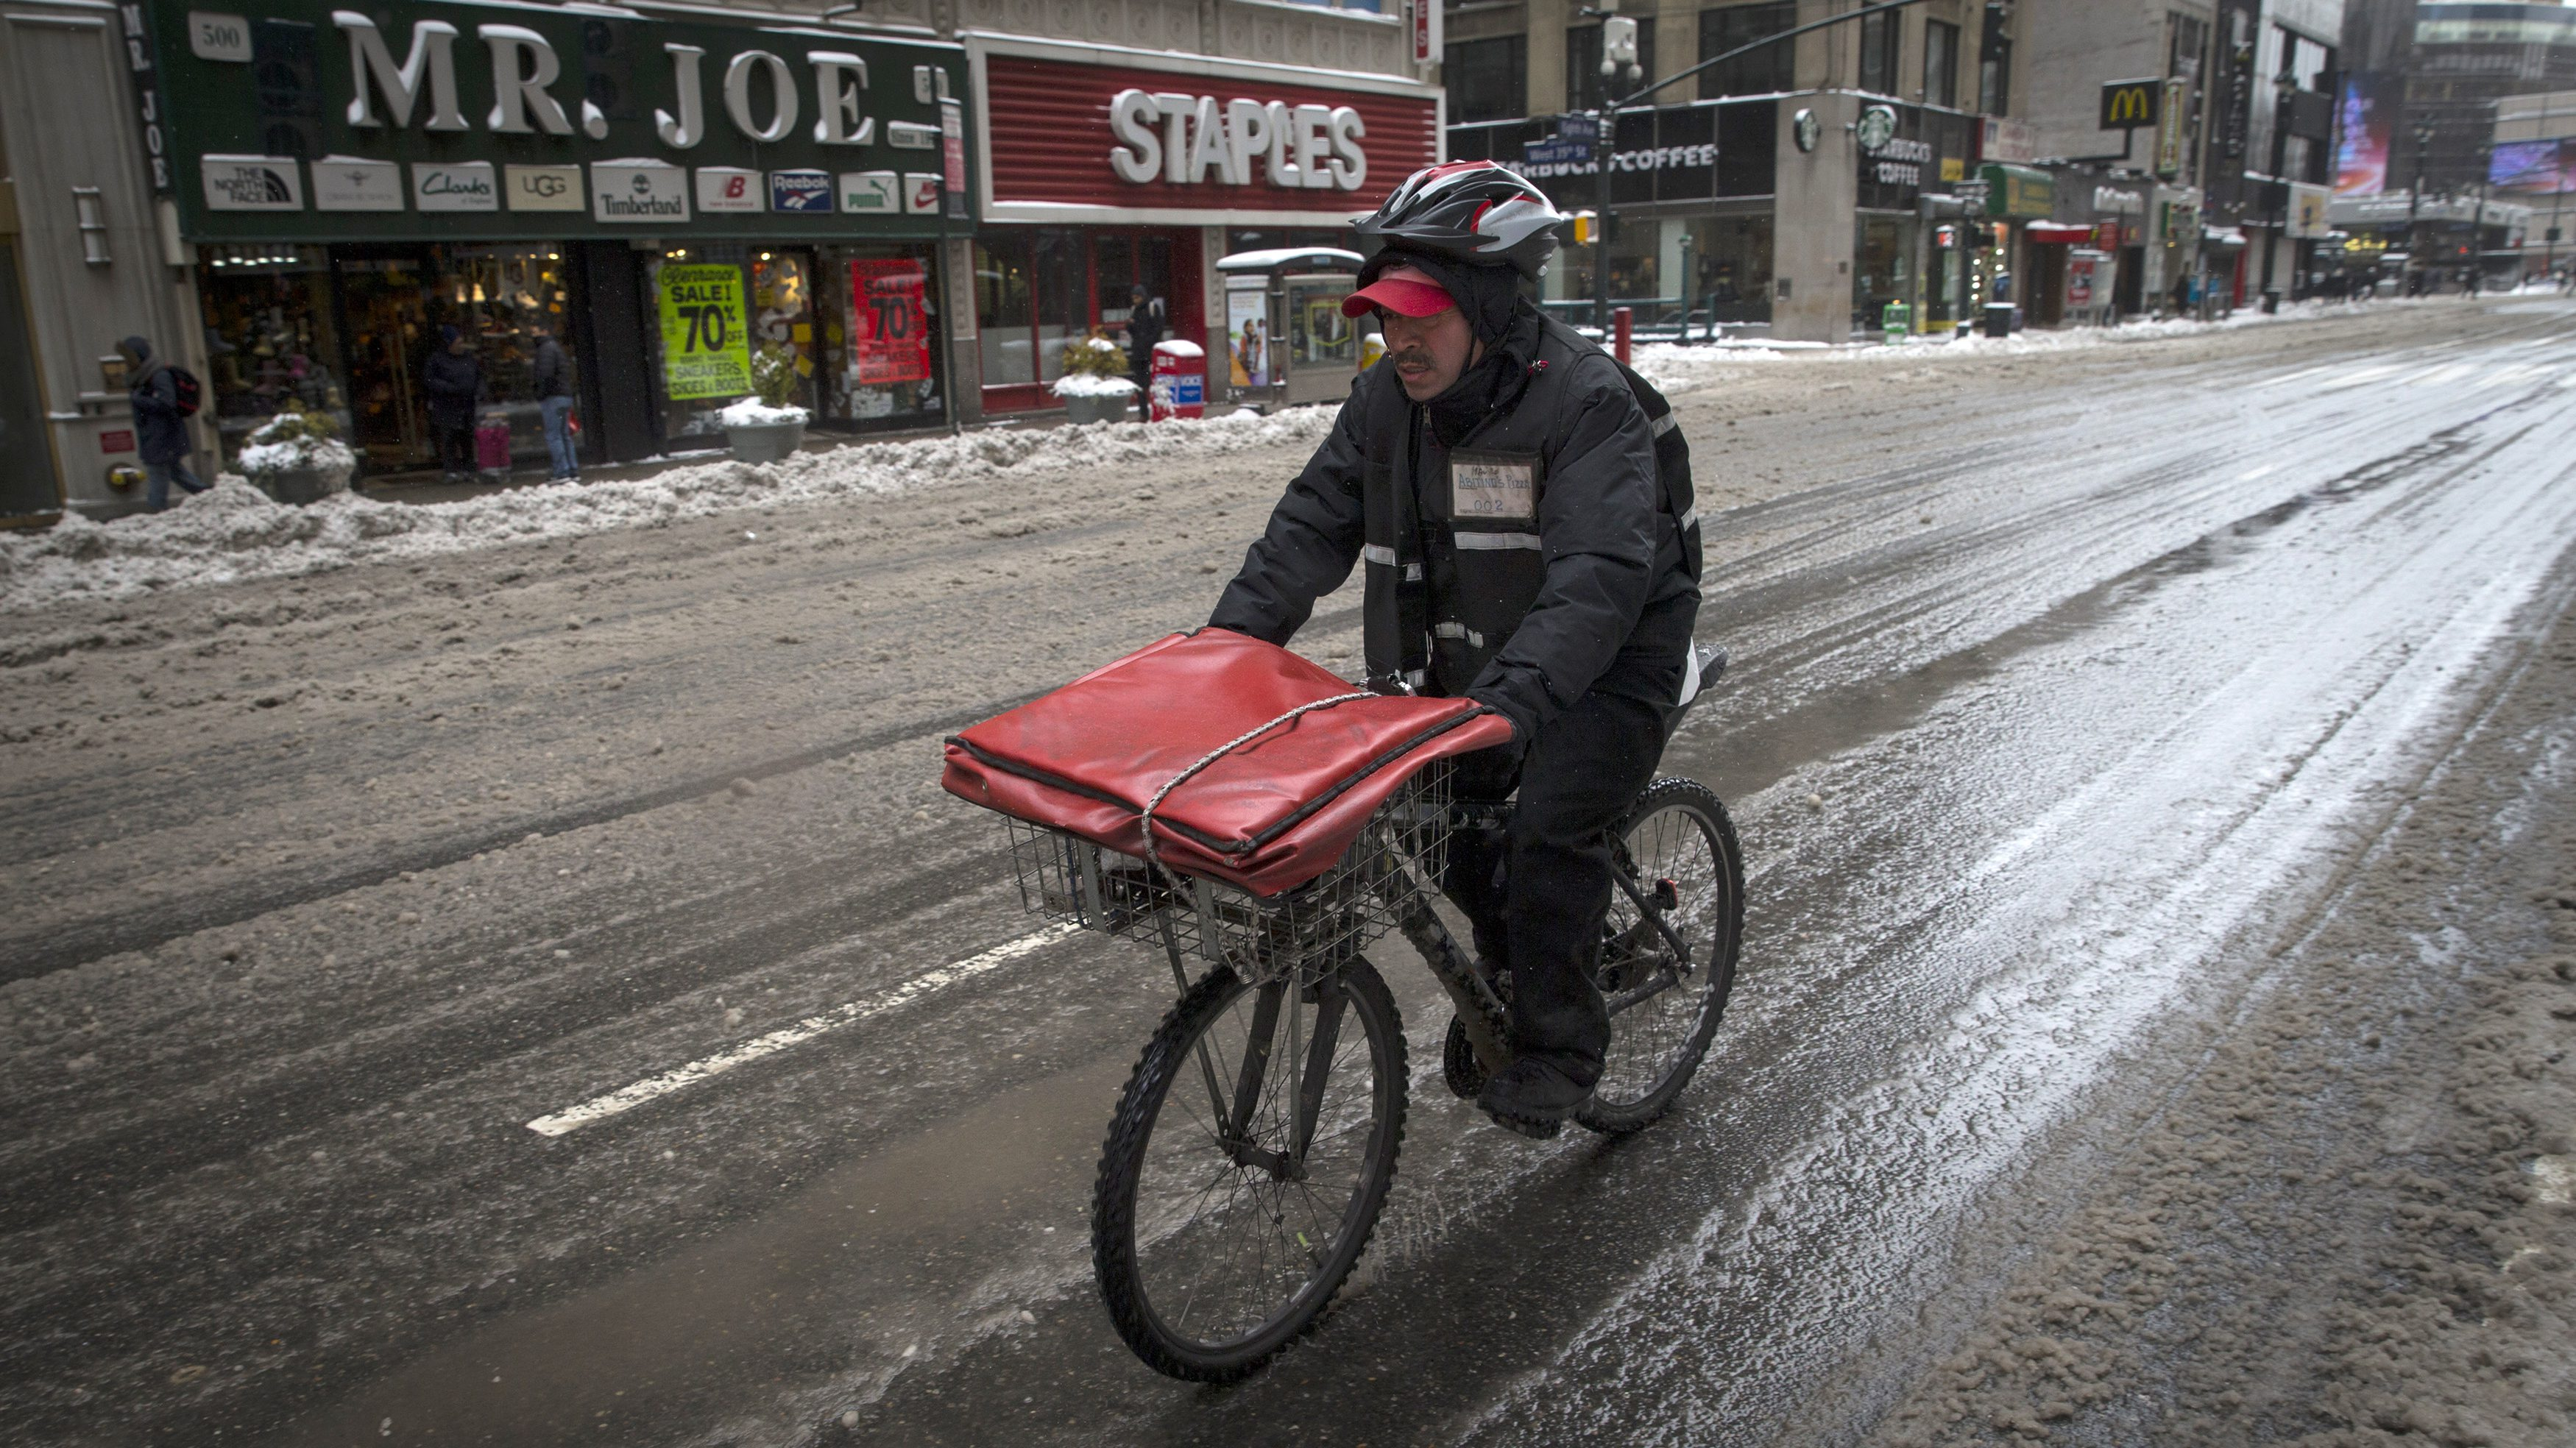 A pizza delivery man rides on a bicycle in New York.